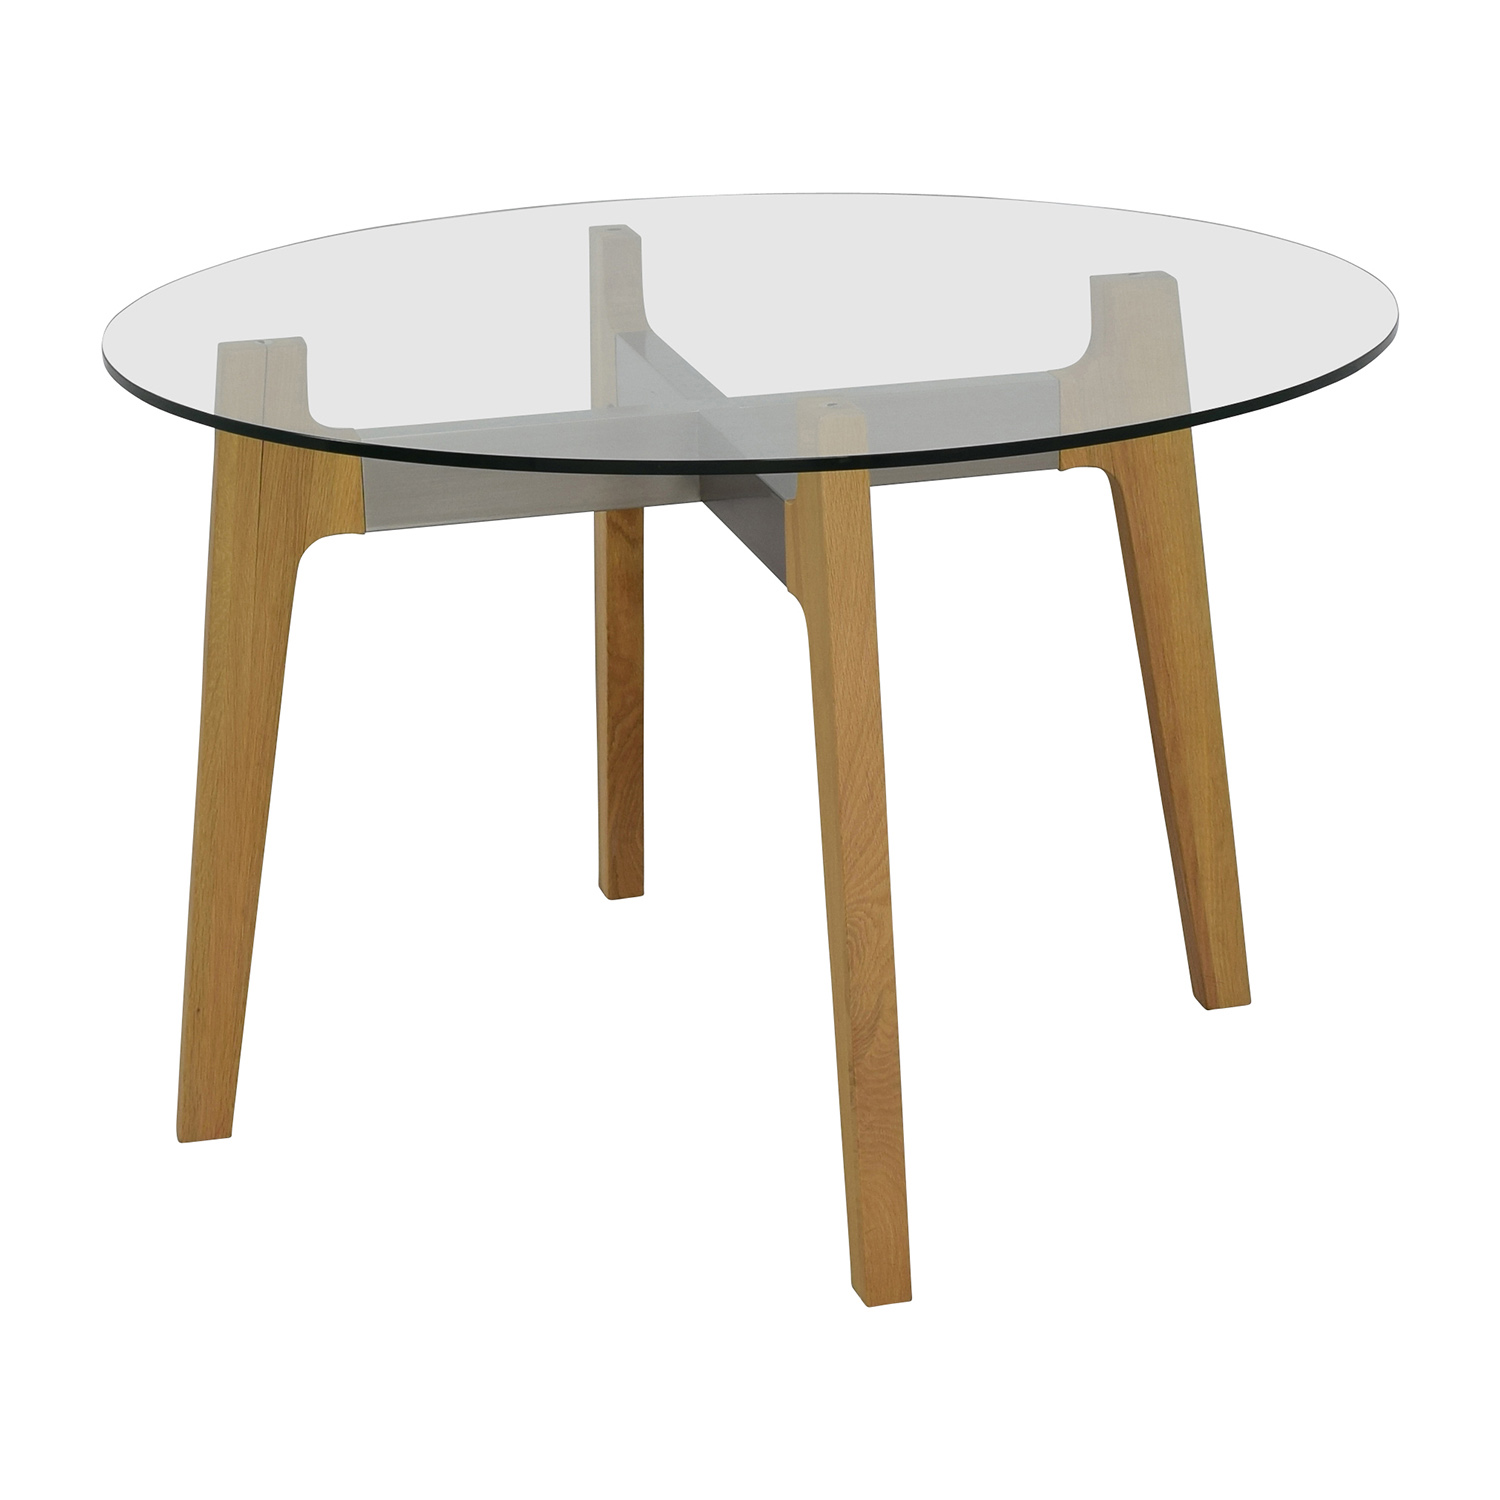 Crate & Barrel Crate & Barrel Mid-Century Glass Table second hand